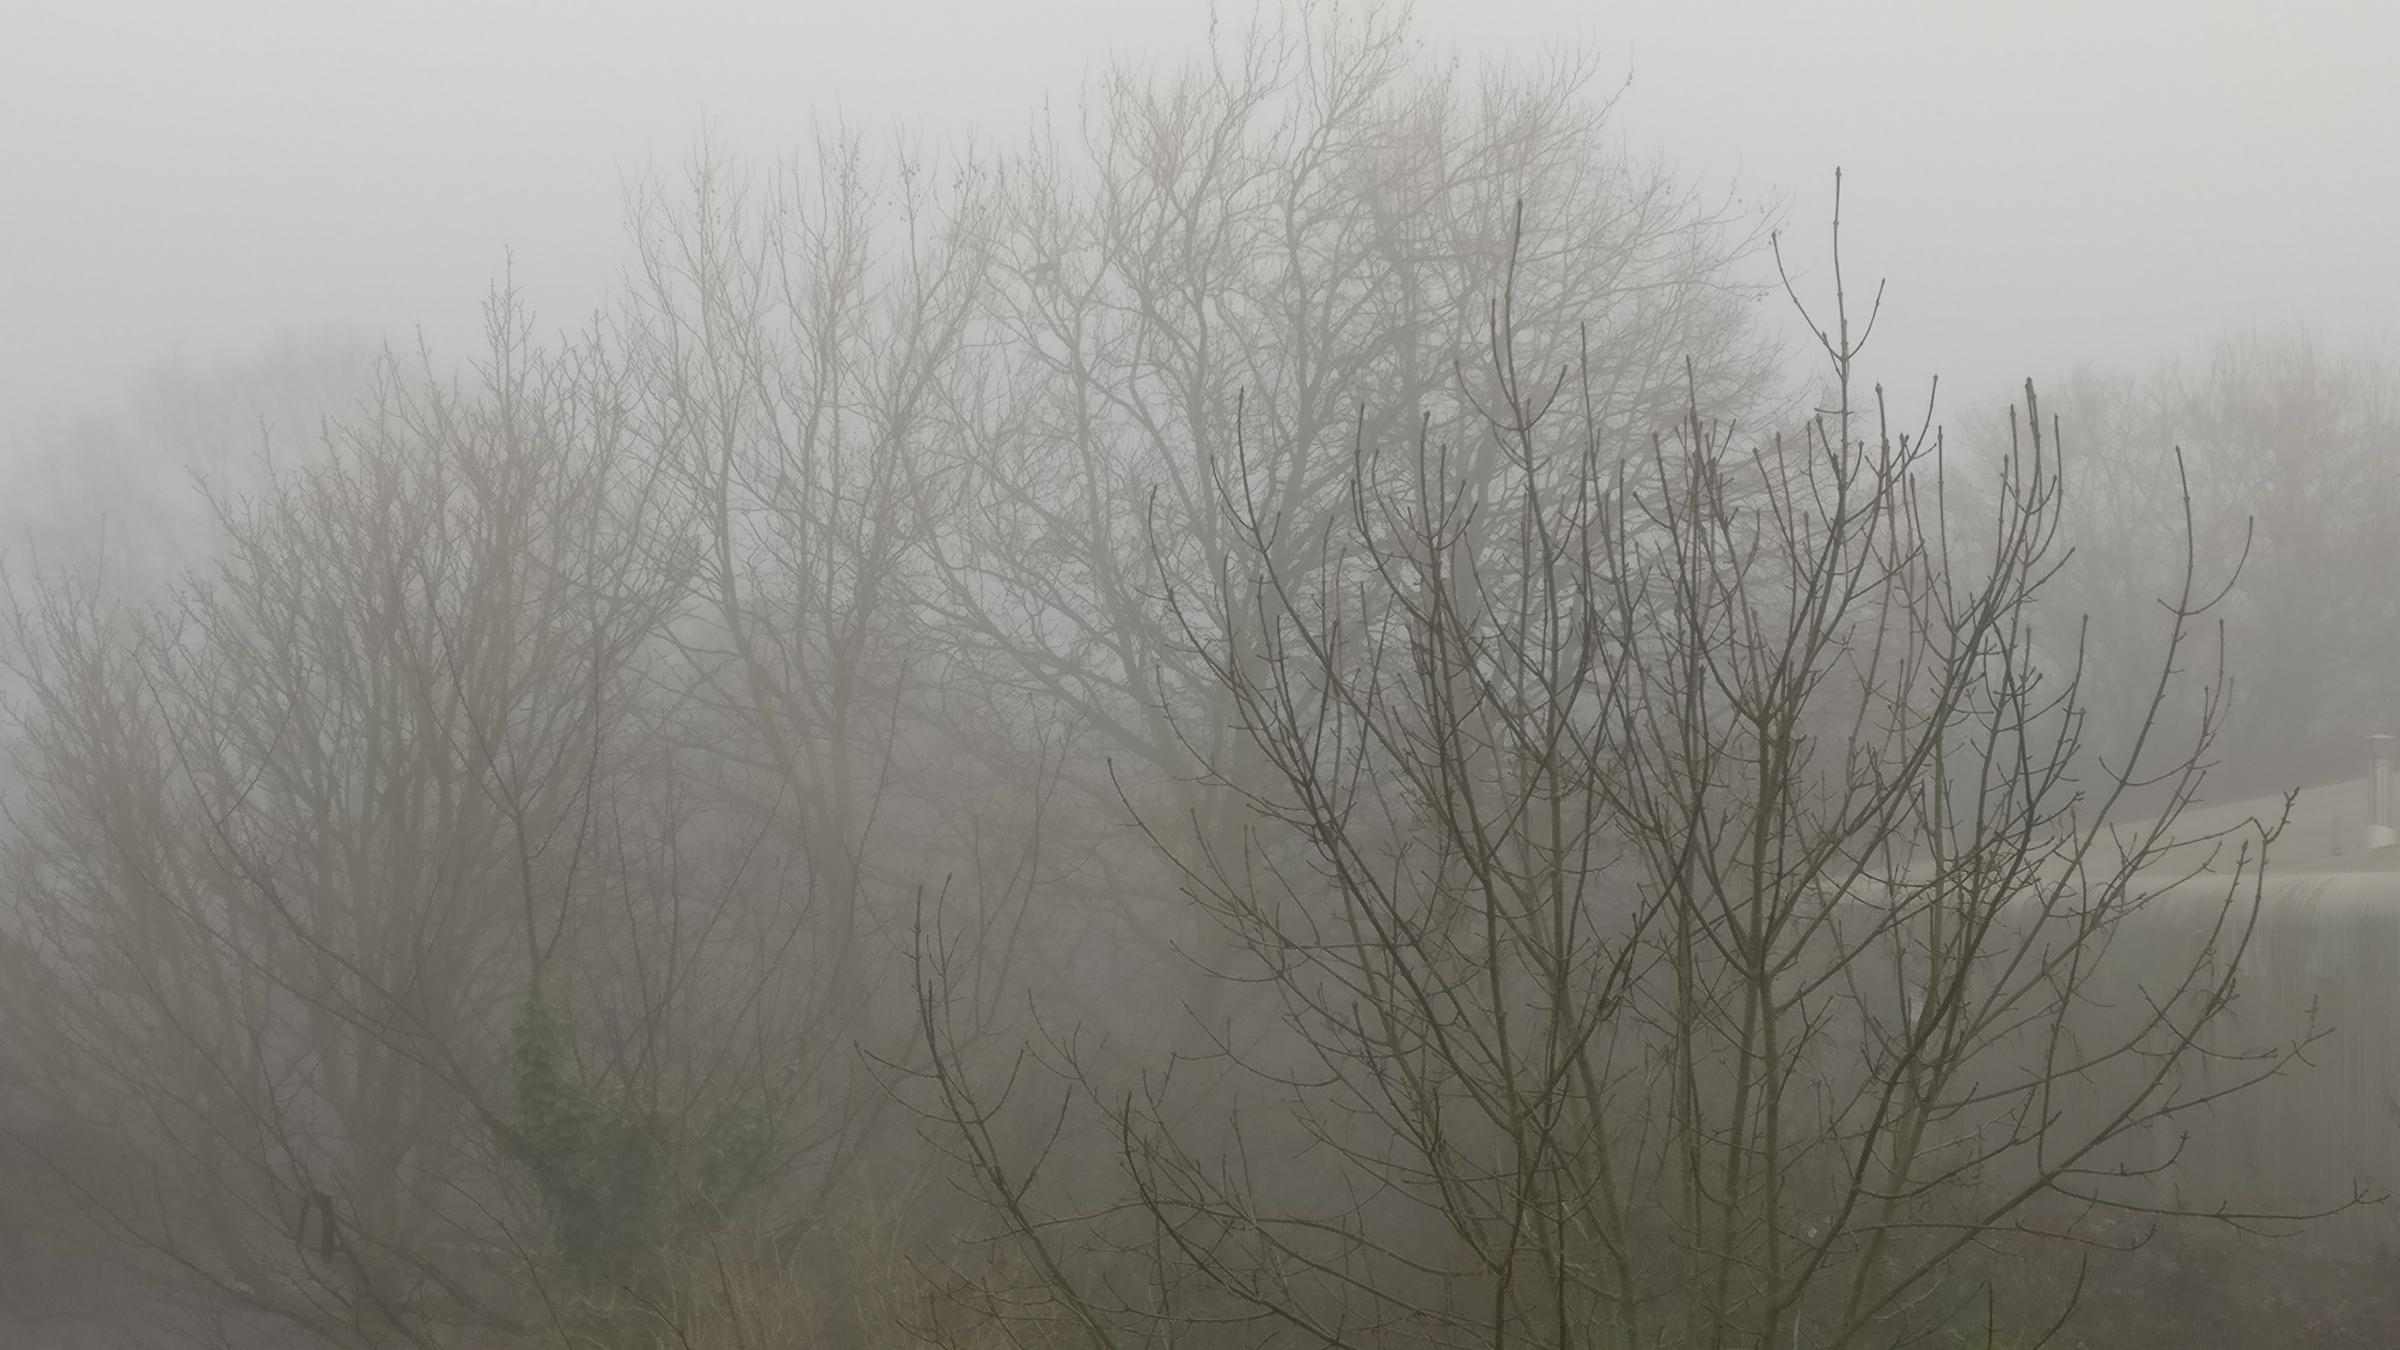 Weather warning remains in place as fog still lingers across Gloucestershire